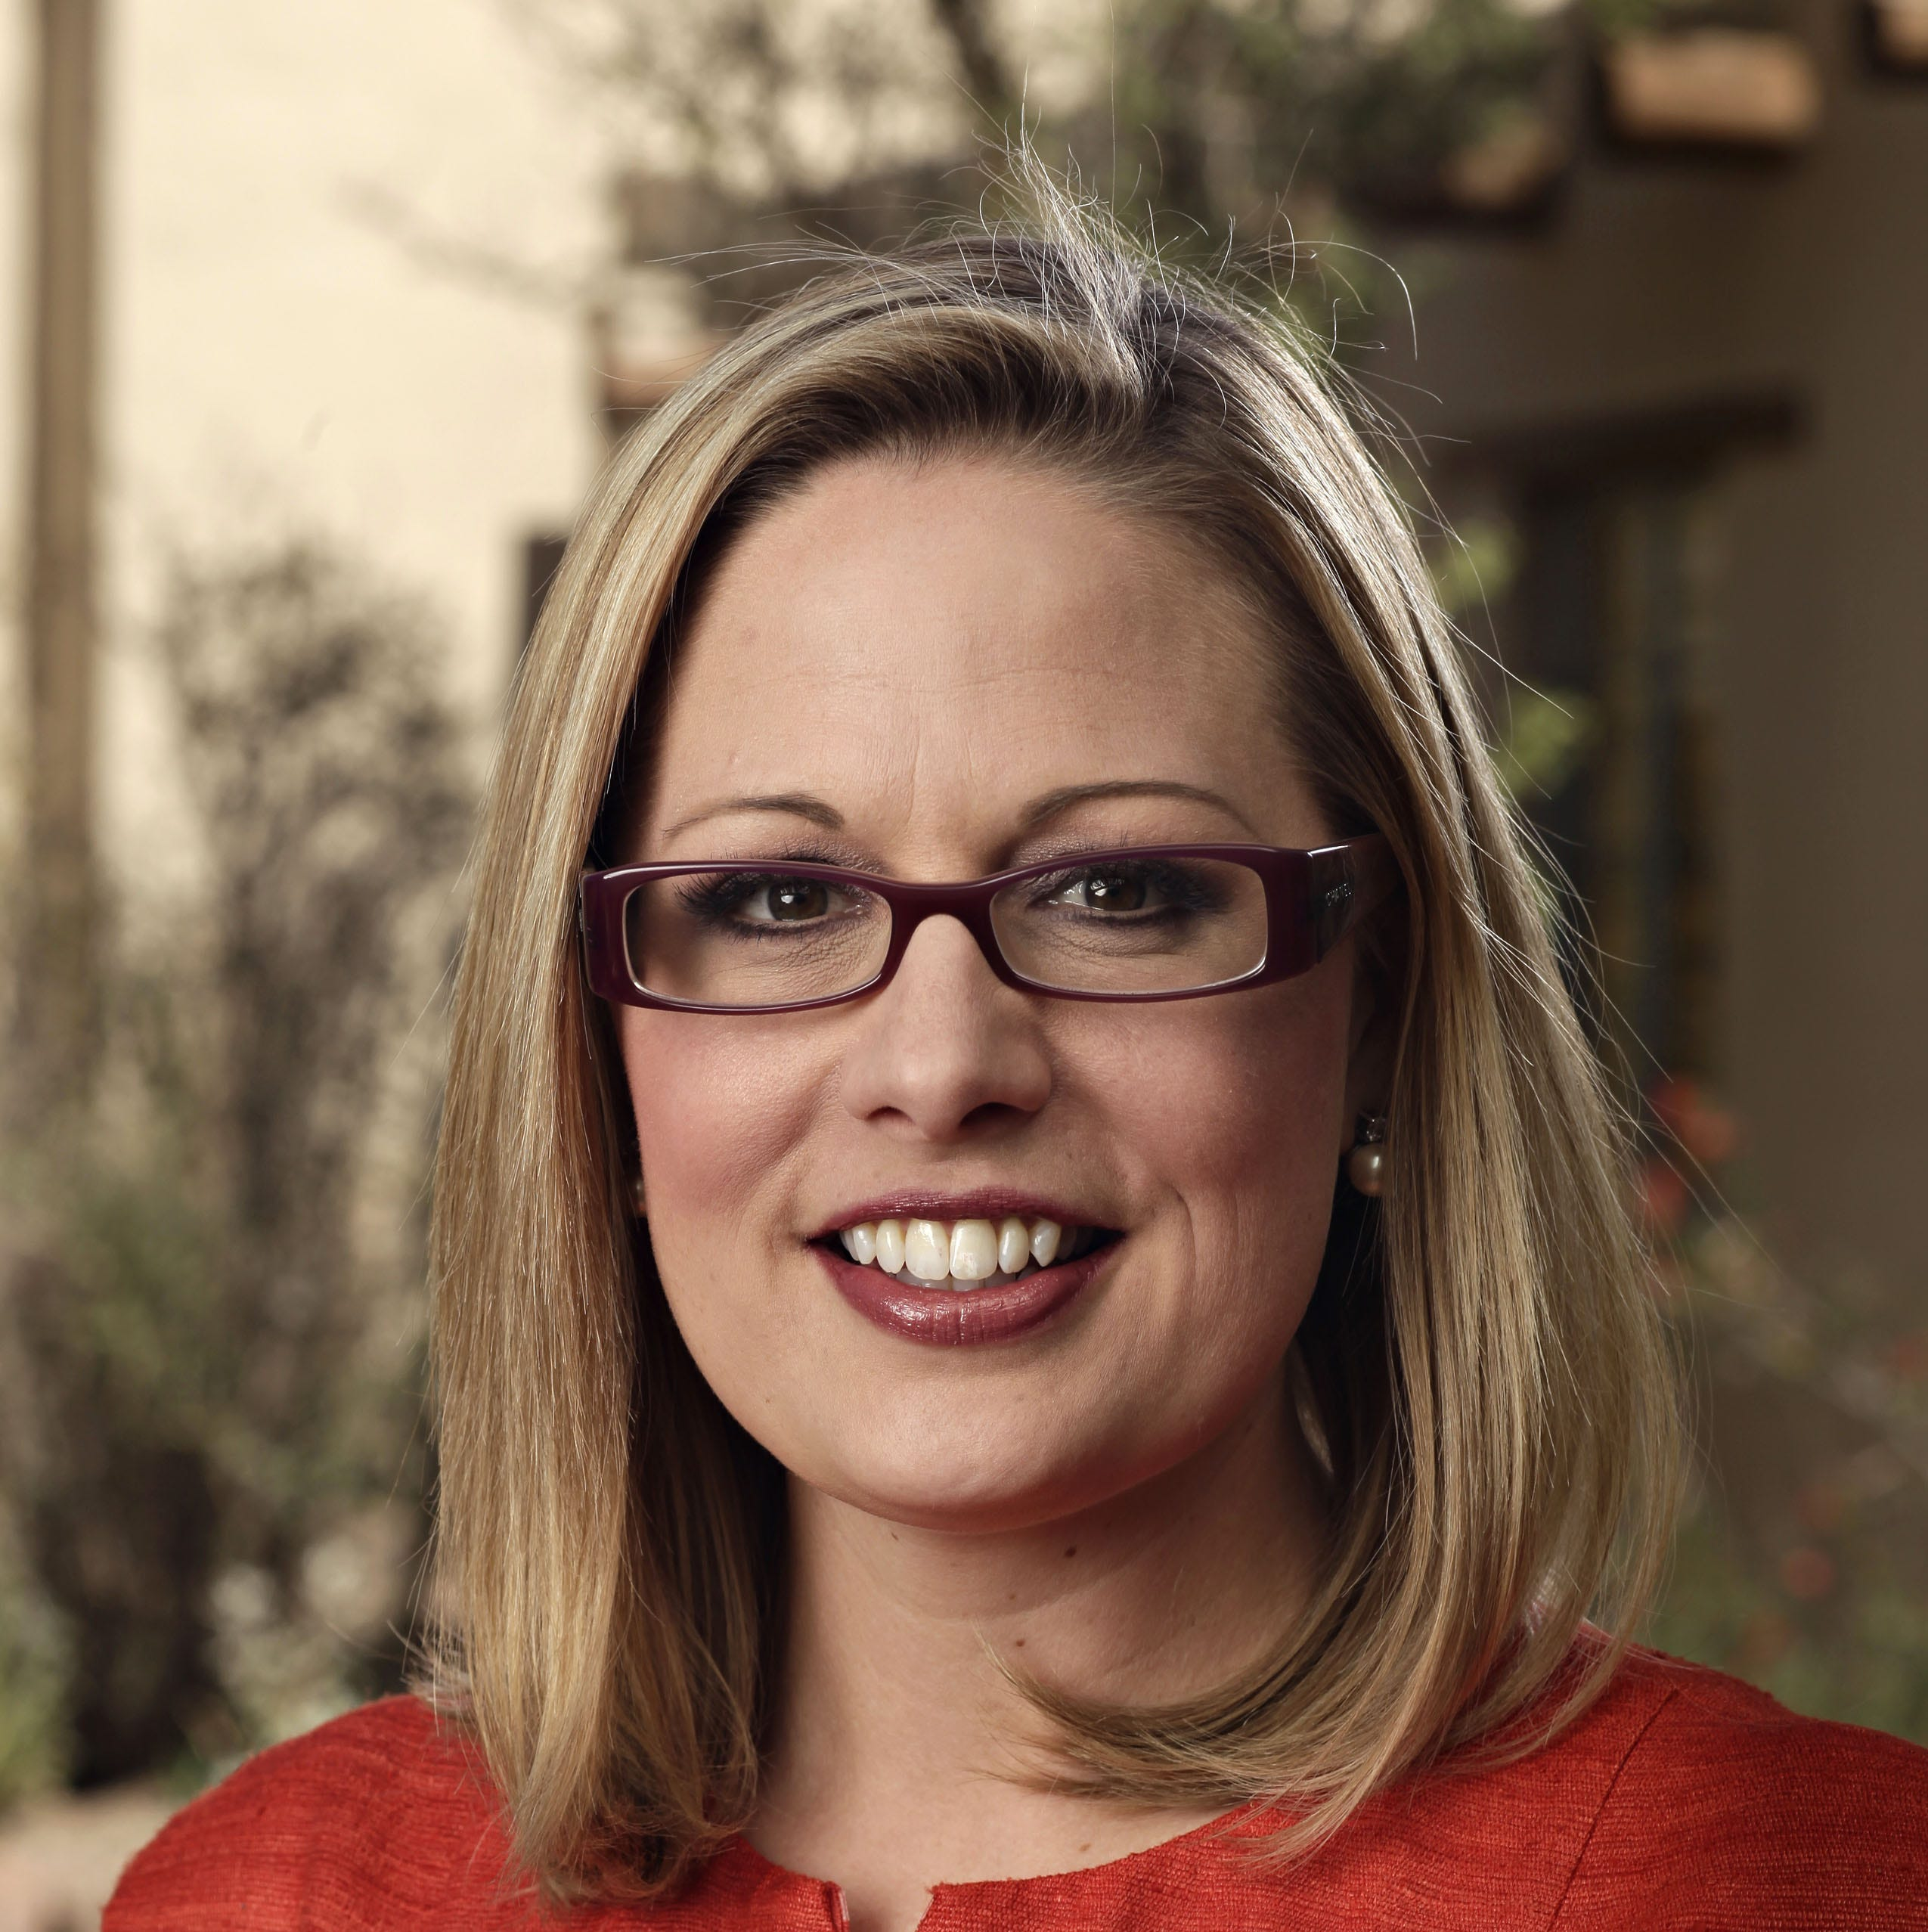 Progressives question Kyrsten Sinema's values in Senate race: 'What does she stand for?'